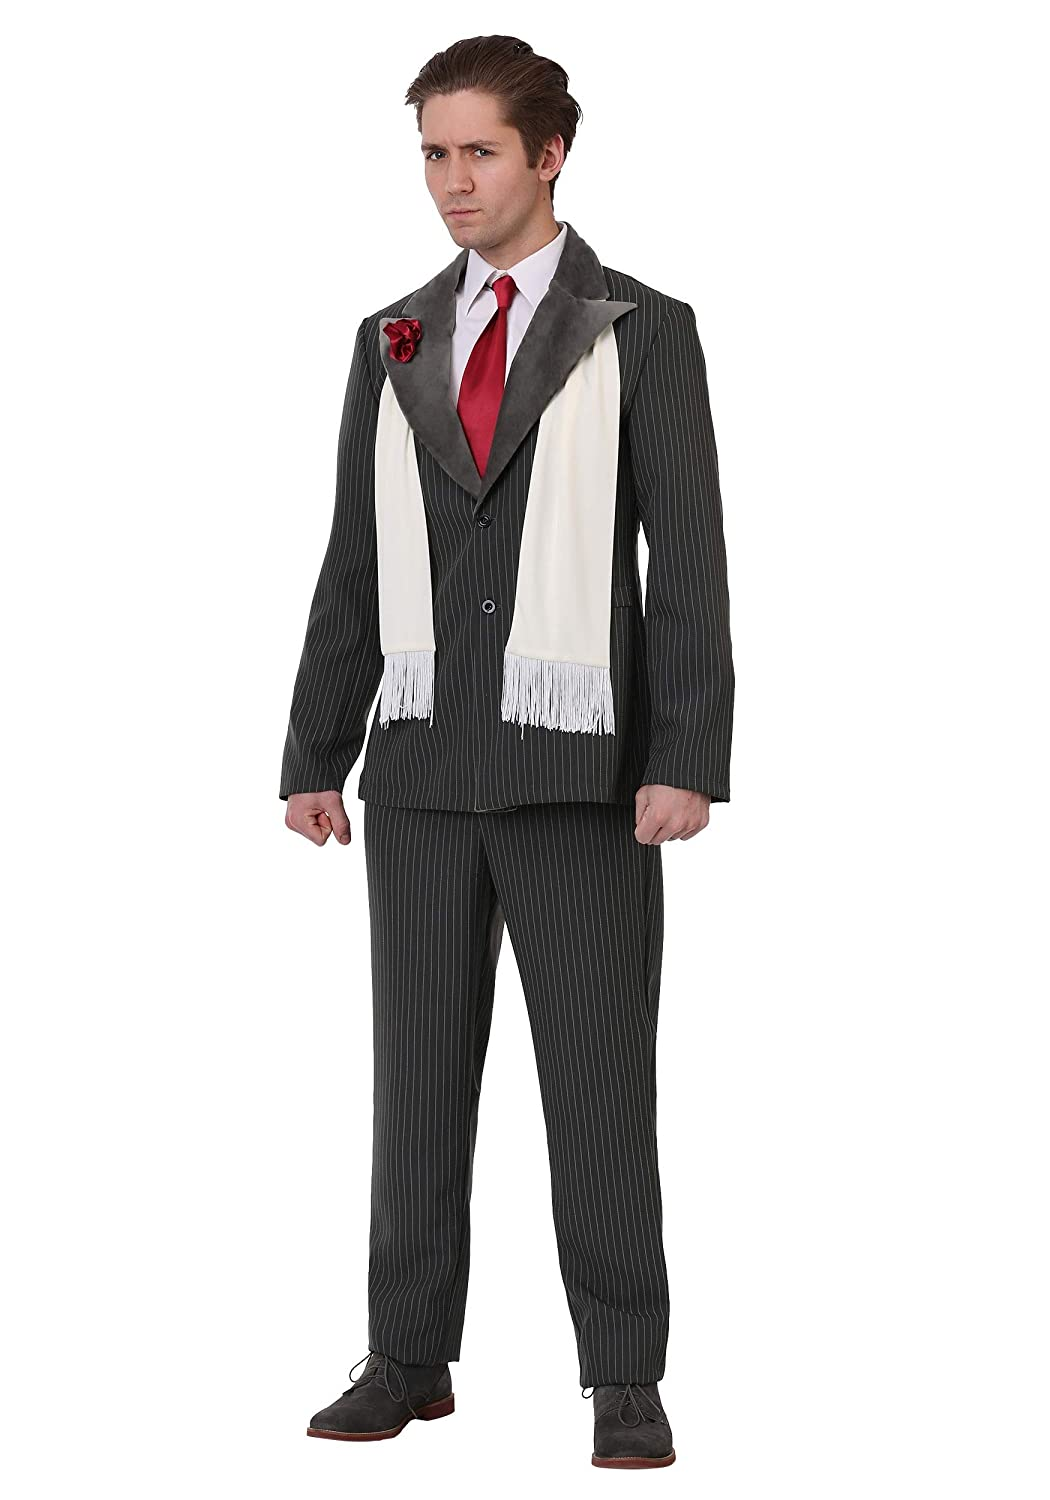 1940s Men's Costumes: WW2, Sailor, Zoot Suits, Gangsters, Detective Mens Vicious Gangster Costume $19.99 AT vintagedancer.com